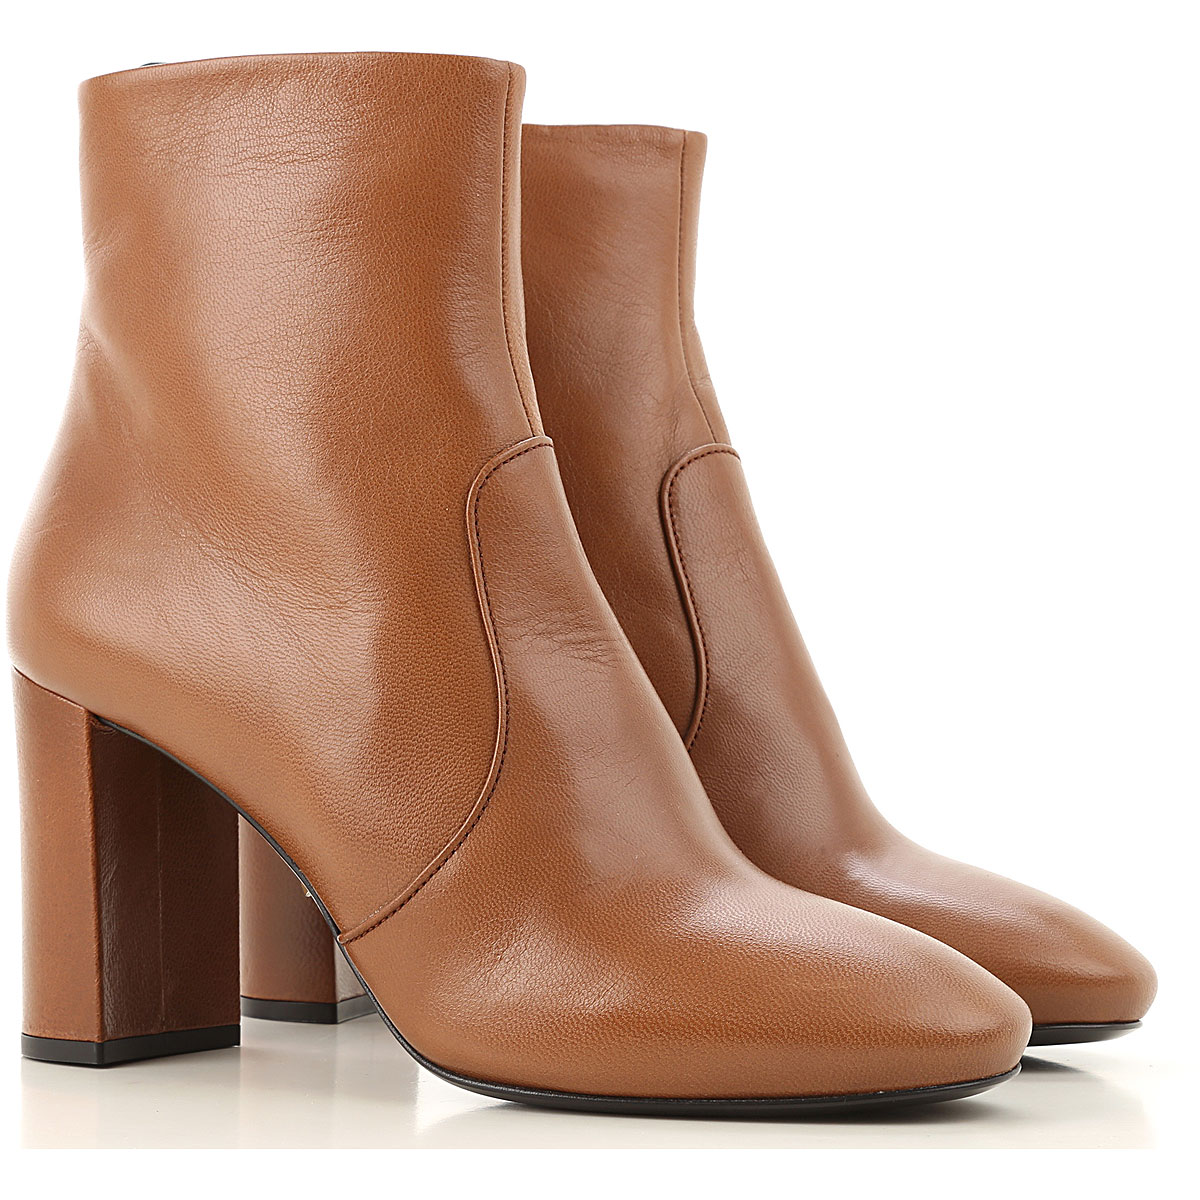 Prada Boots for Women, Booties On Sale, Cognac, Leather, 2019, 5.5 6 7 7.5 9